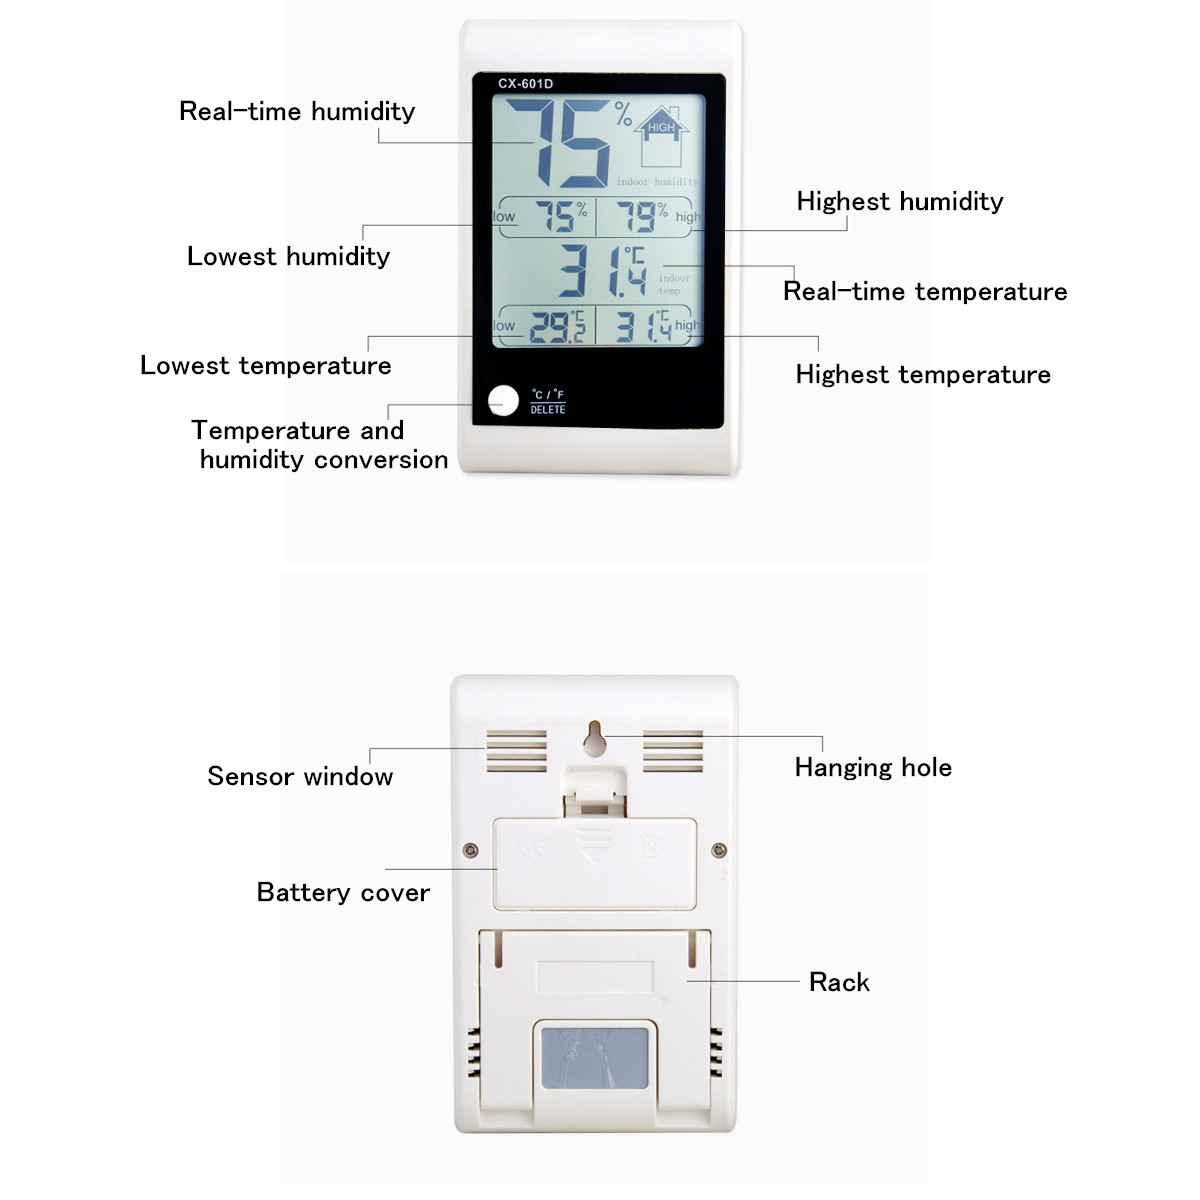 Measures of the digital temperature and humidity monitor